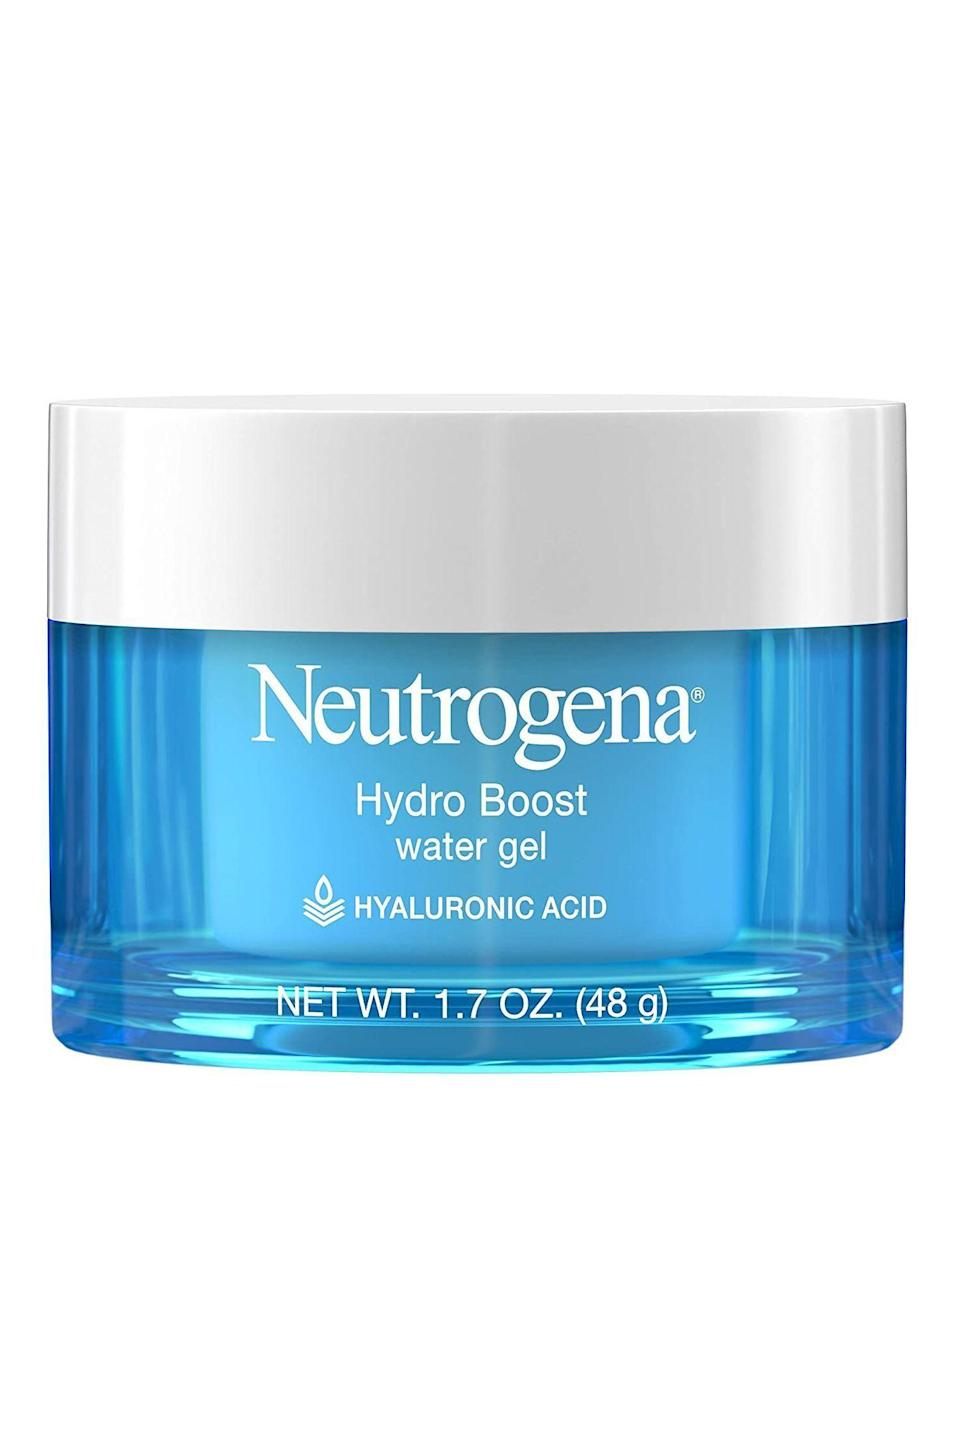 """<p><strong>Neutrogena</strong></p><p>amazon.com</p><p><strong>$15.63</strong></p><p><a href=""""http://www.amazon.com/dp/B00NR1YQHM/?tag=syn-yahoo-20&ascsubtag=%5Bartid%7C10058.g.34015100%5Bsrc%7Cyahoo-us"""" rel=""""nofollow noopener"""" target=""""_blank"""" data-ylk=""""slk:SHOP IT"""" class=""""link rapid-noclick-resp"""">SHOP IT</a></p><p>This moisturizer is a classic staple for a reason. It's hydrating like a balm, but sinks into the skin like a gel. If you're looking for moisture without the greasy residue, this cream is for you.</p>"""